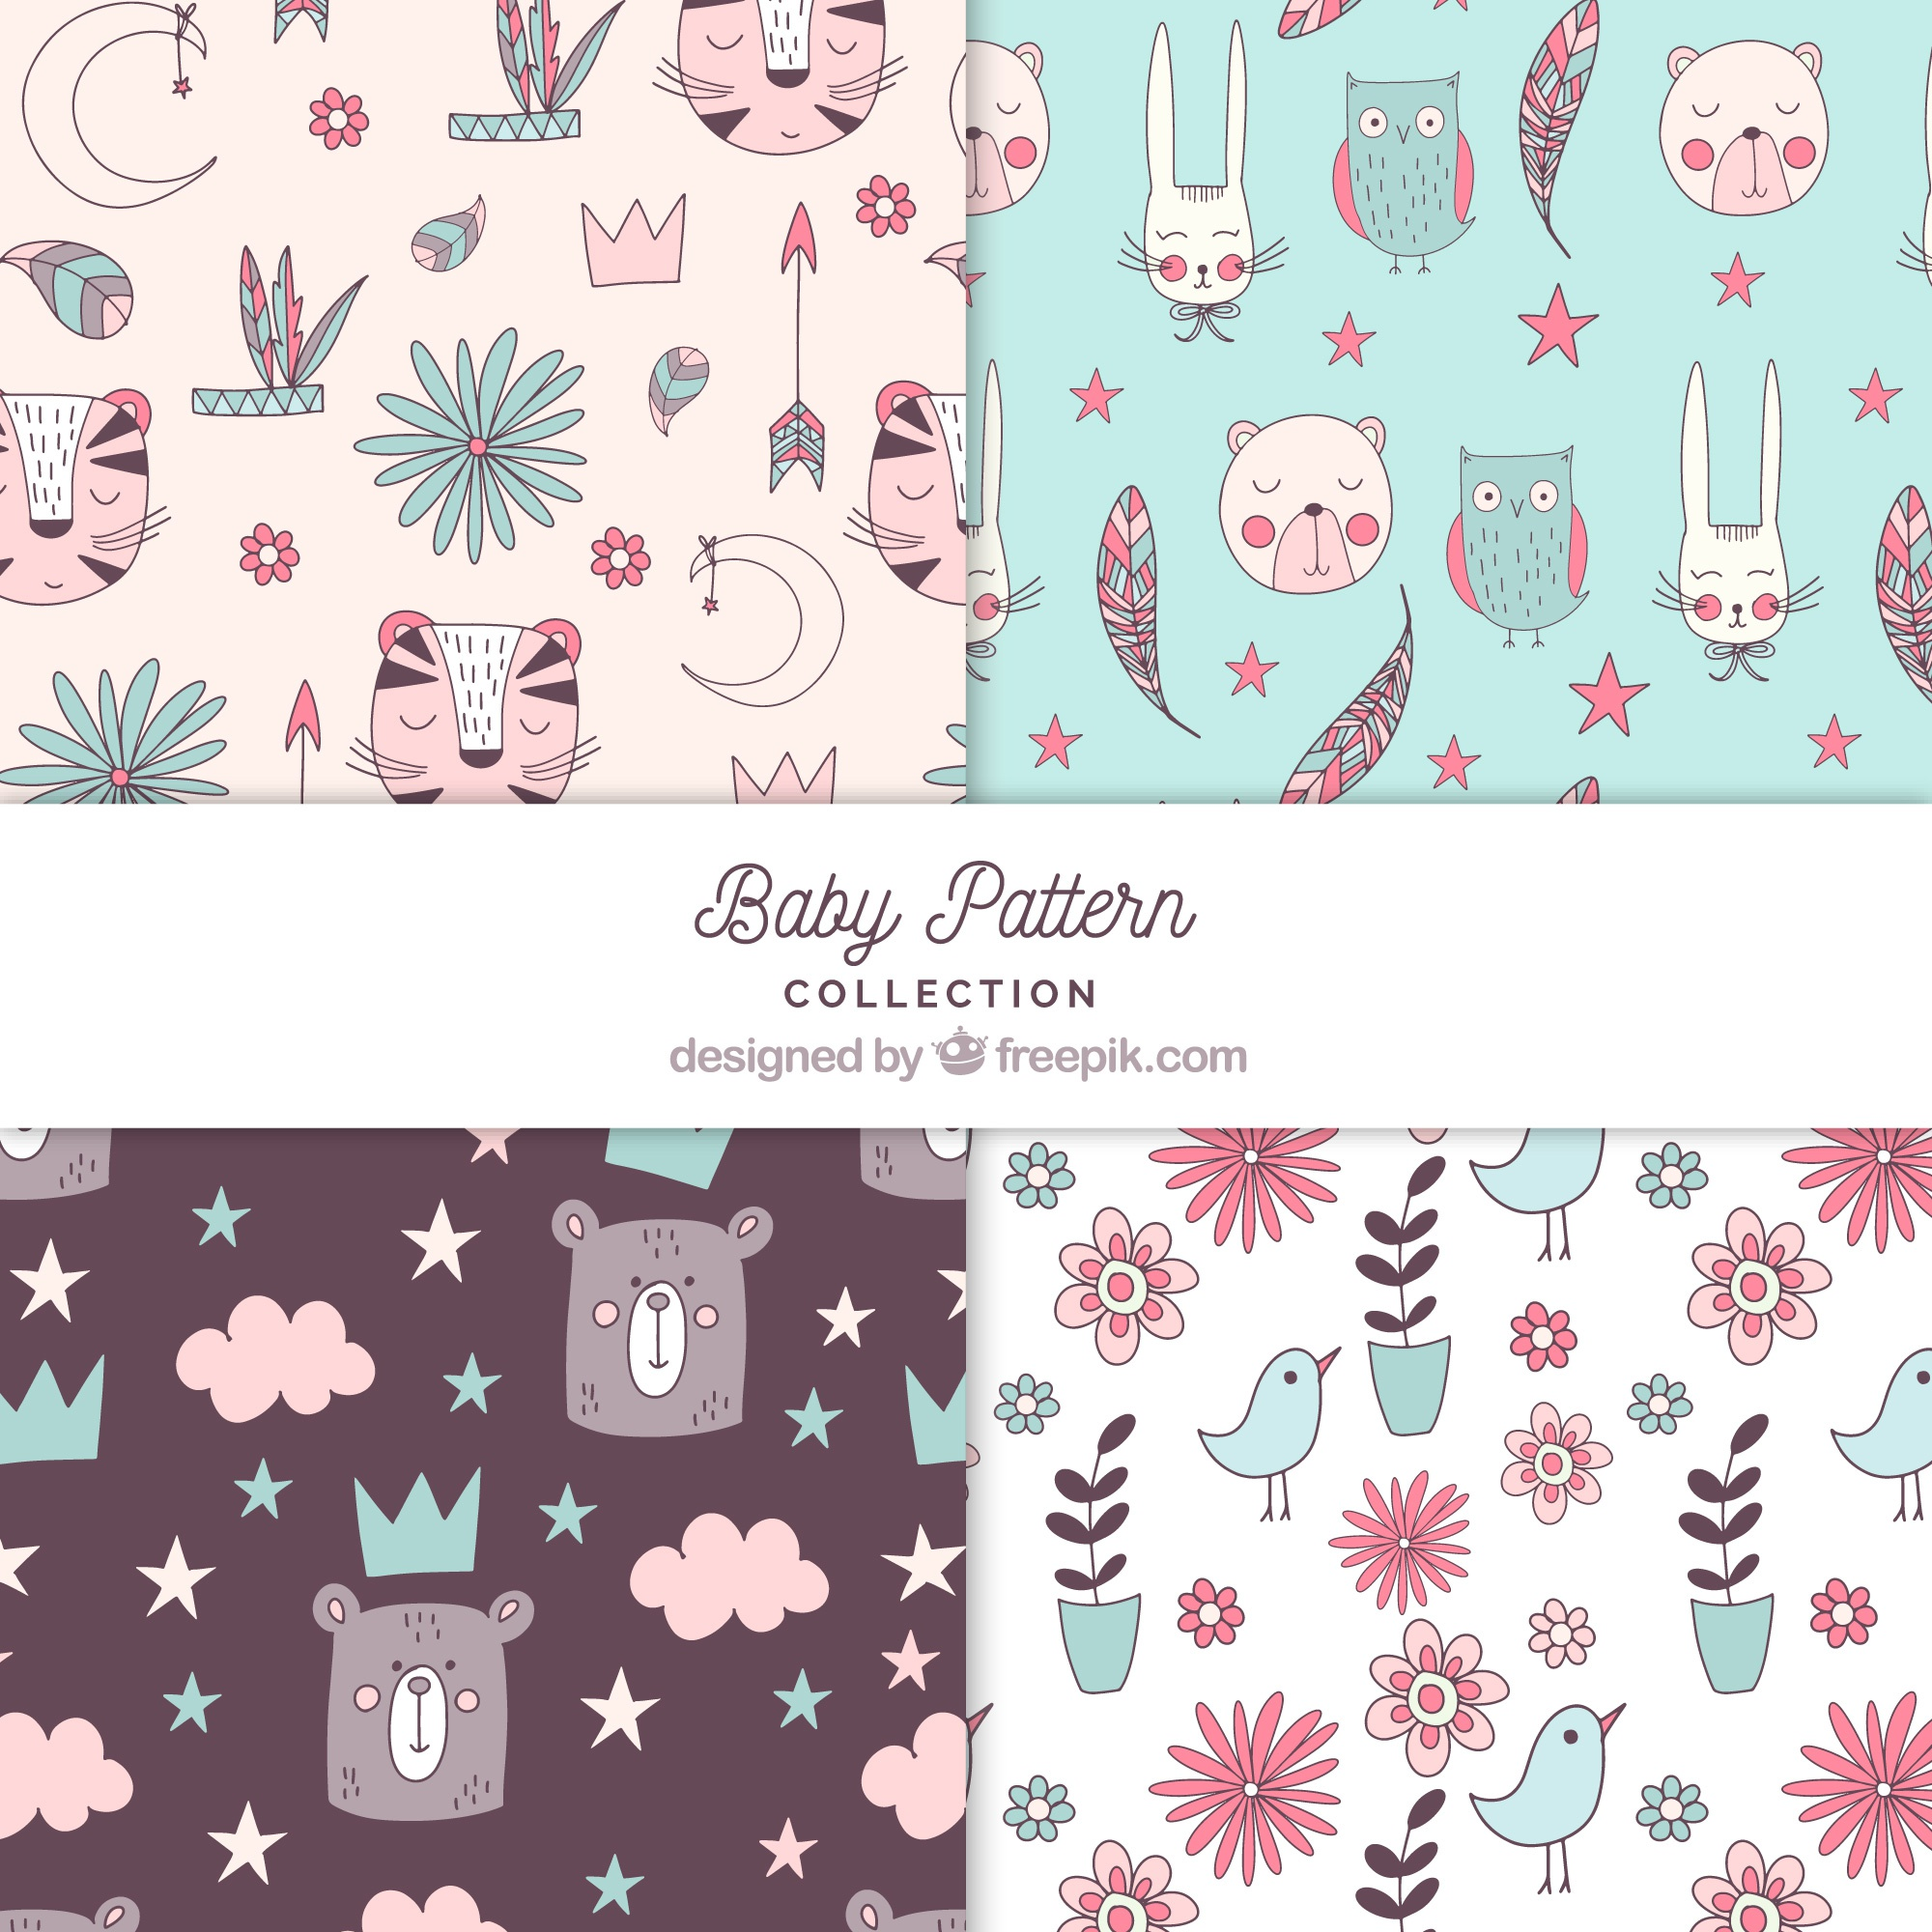 Baby patterns collection with cute elements